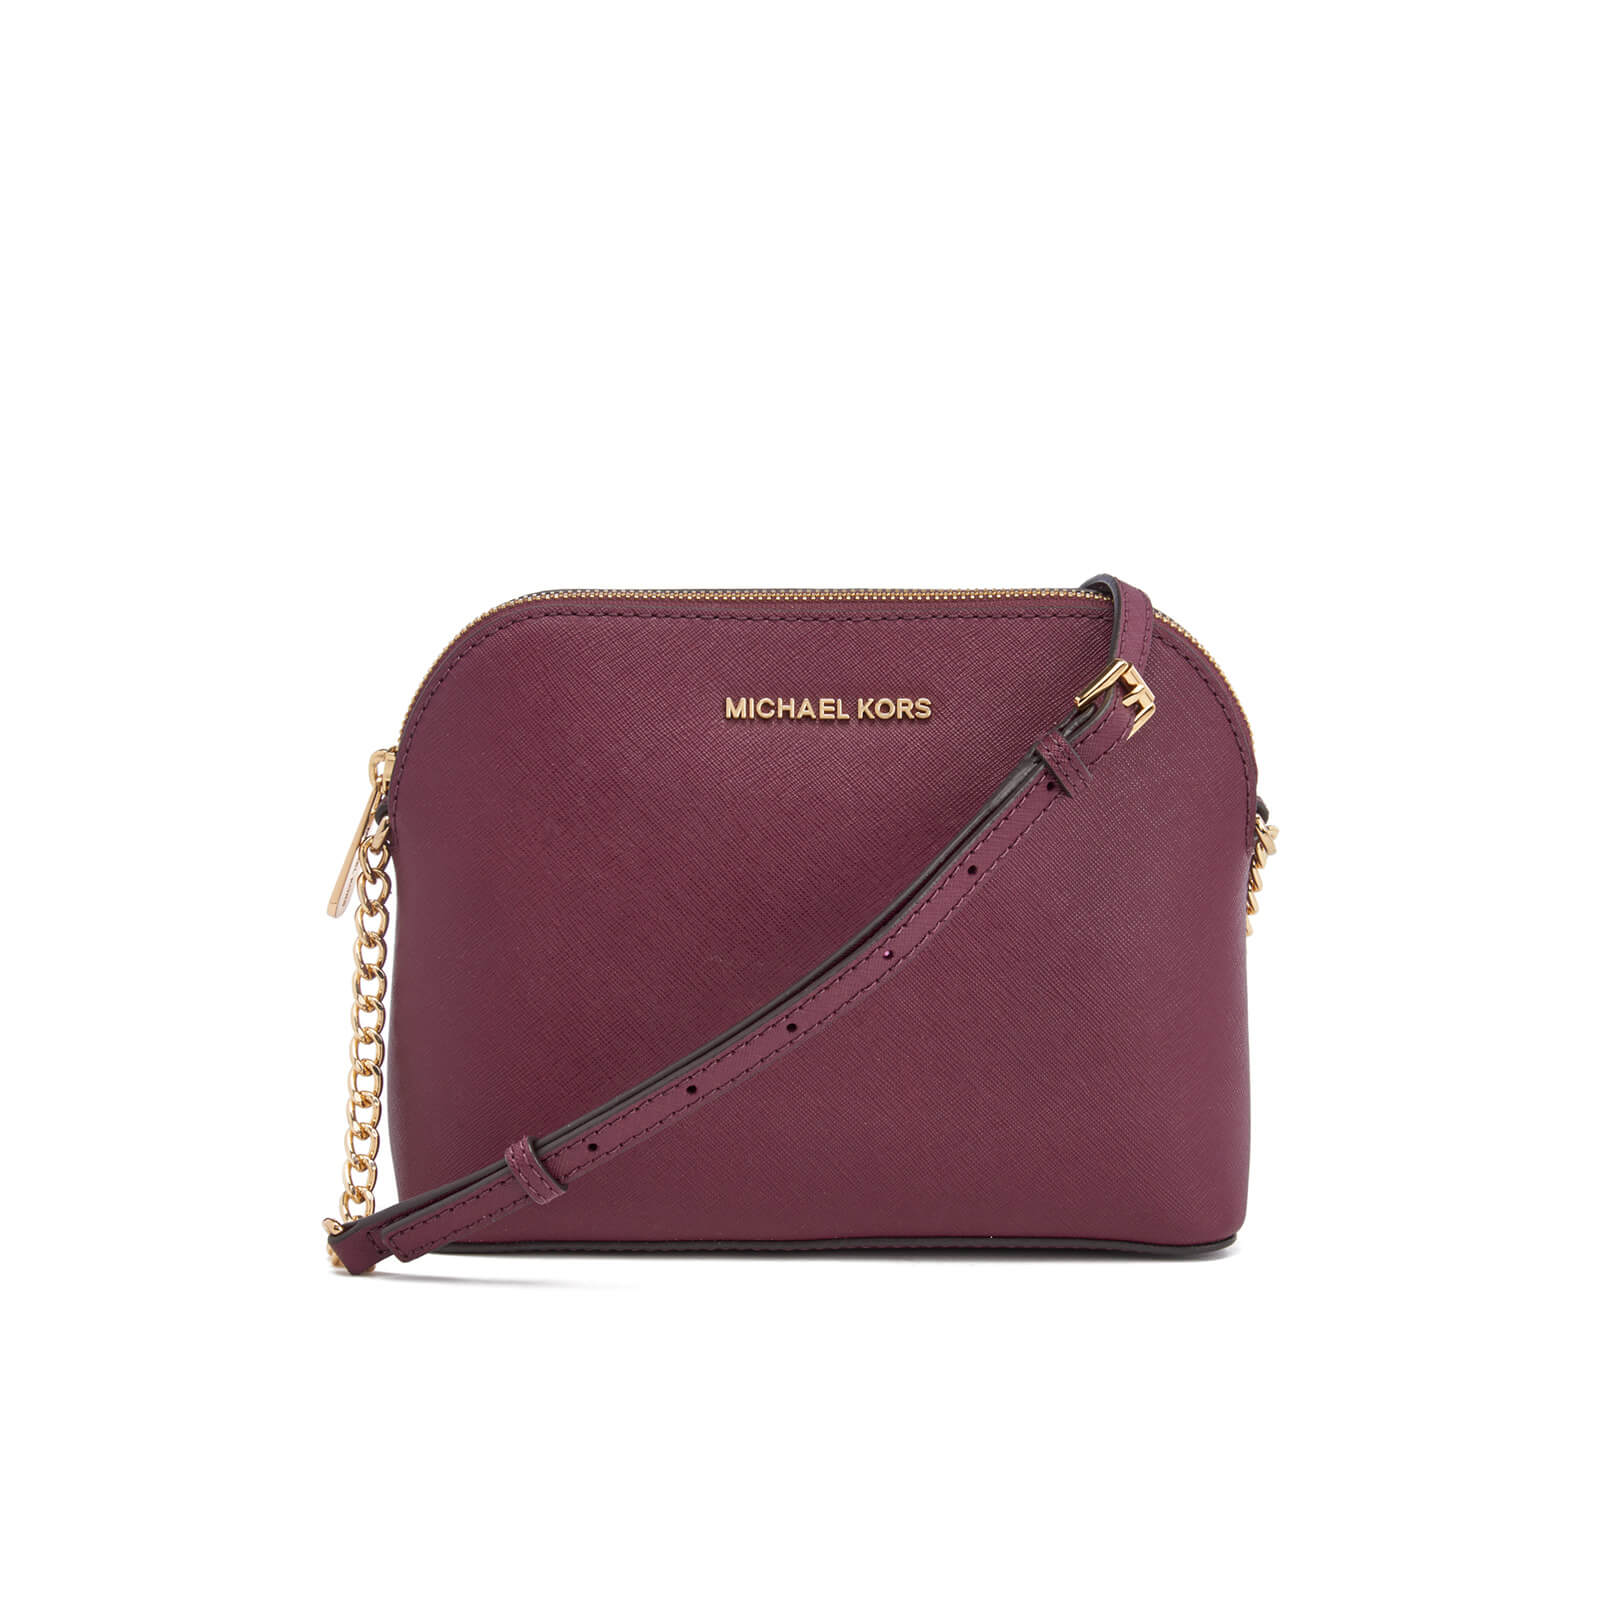 298c0a18081398 MICHAEL MICHAEL KORS Women's Cindy Large Dome Cross Body Bag - Plum - Free  UK Delivery over £50